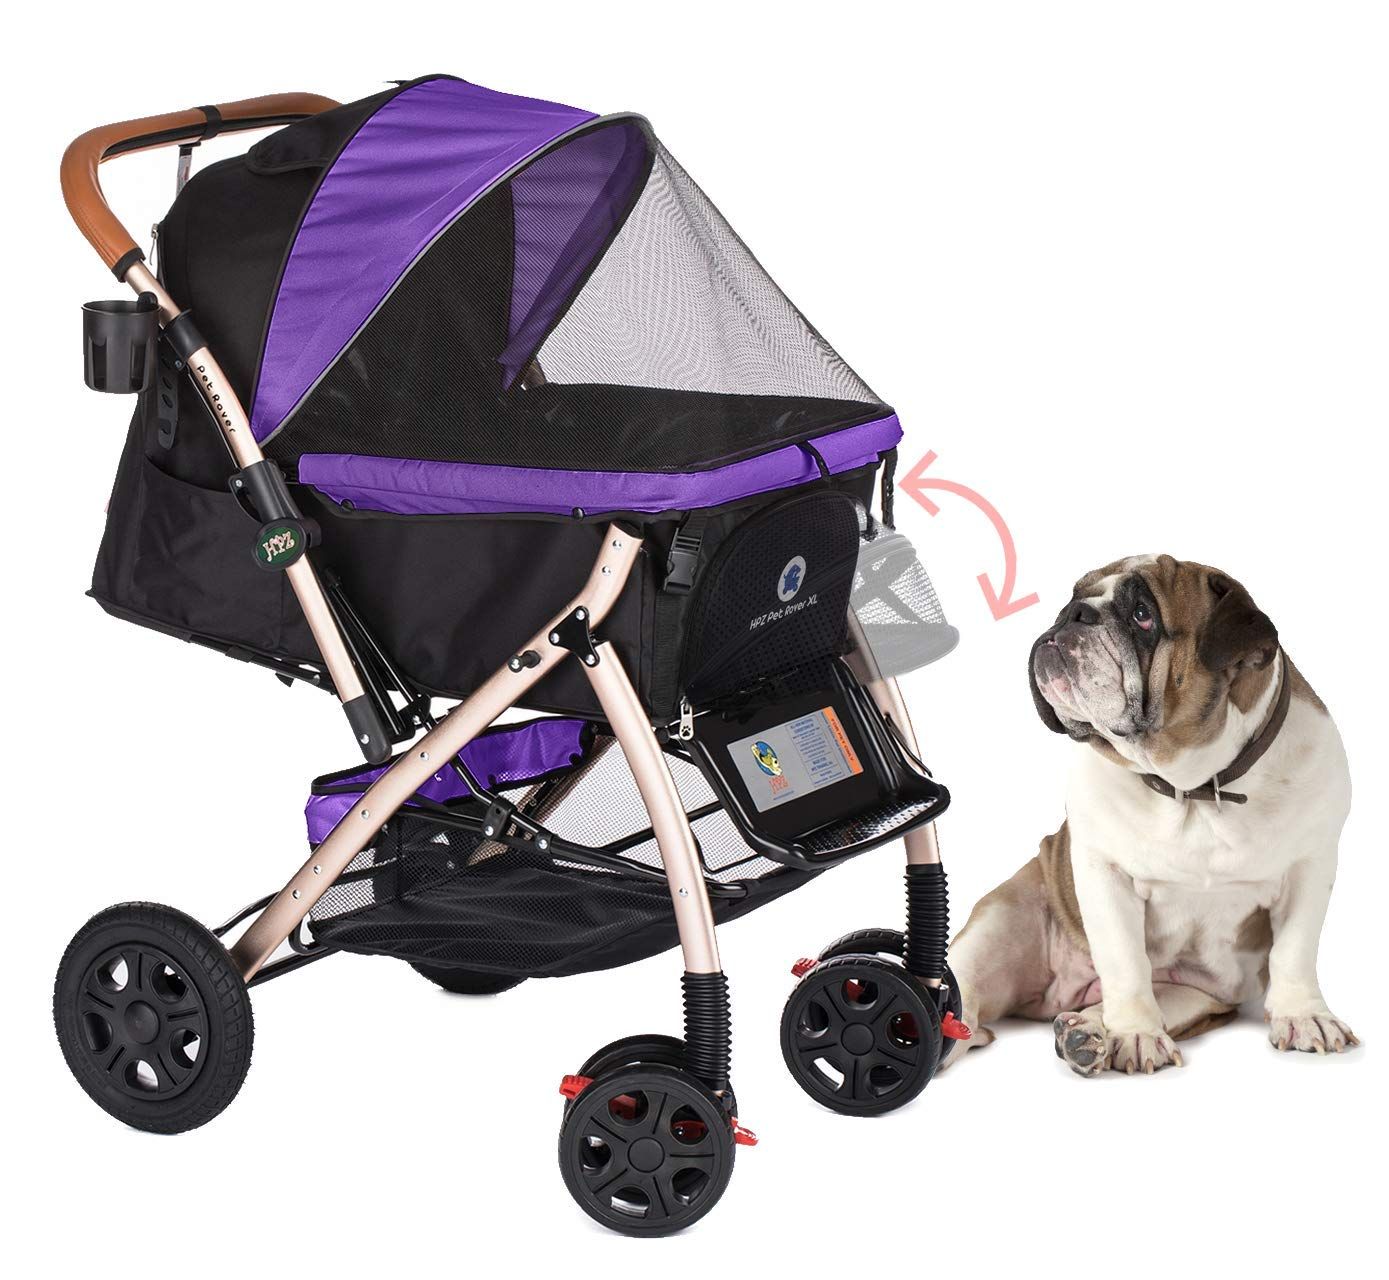 HPZ Pet Rover XL Extra-Long Premium Heavy Duty Dog/Cat/Pet Stroller Travel Carriage with Convertible Compartment…